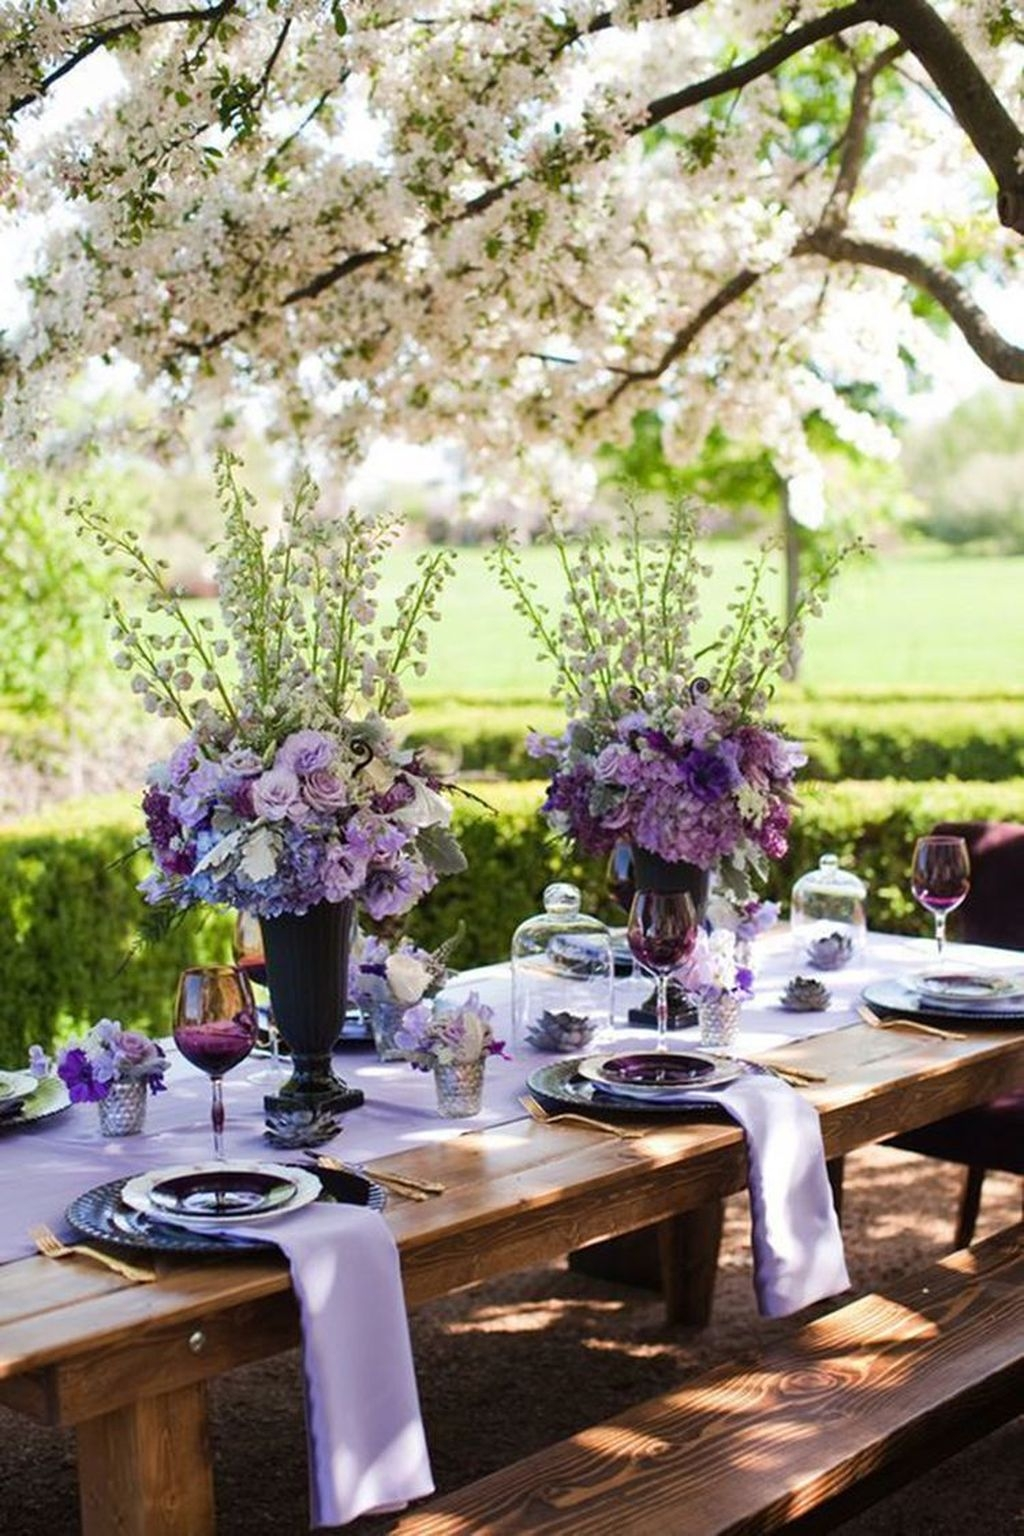 Unordinary Valentine Outdoor Decorations Table Settings For Couple 11